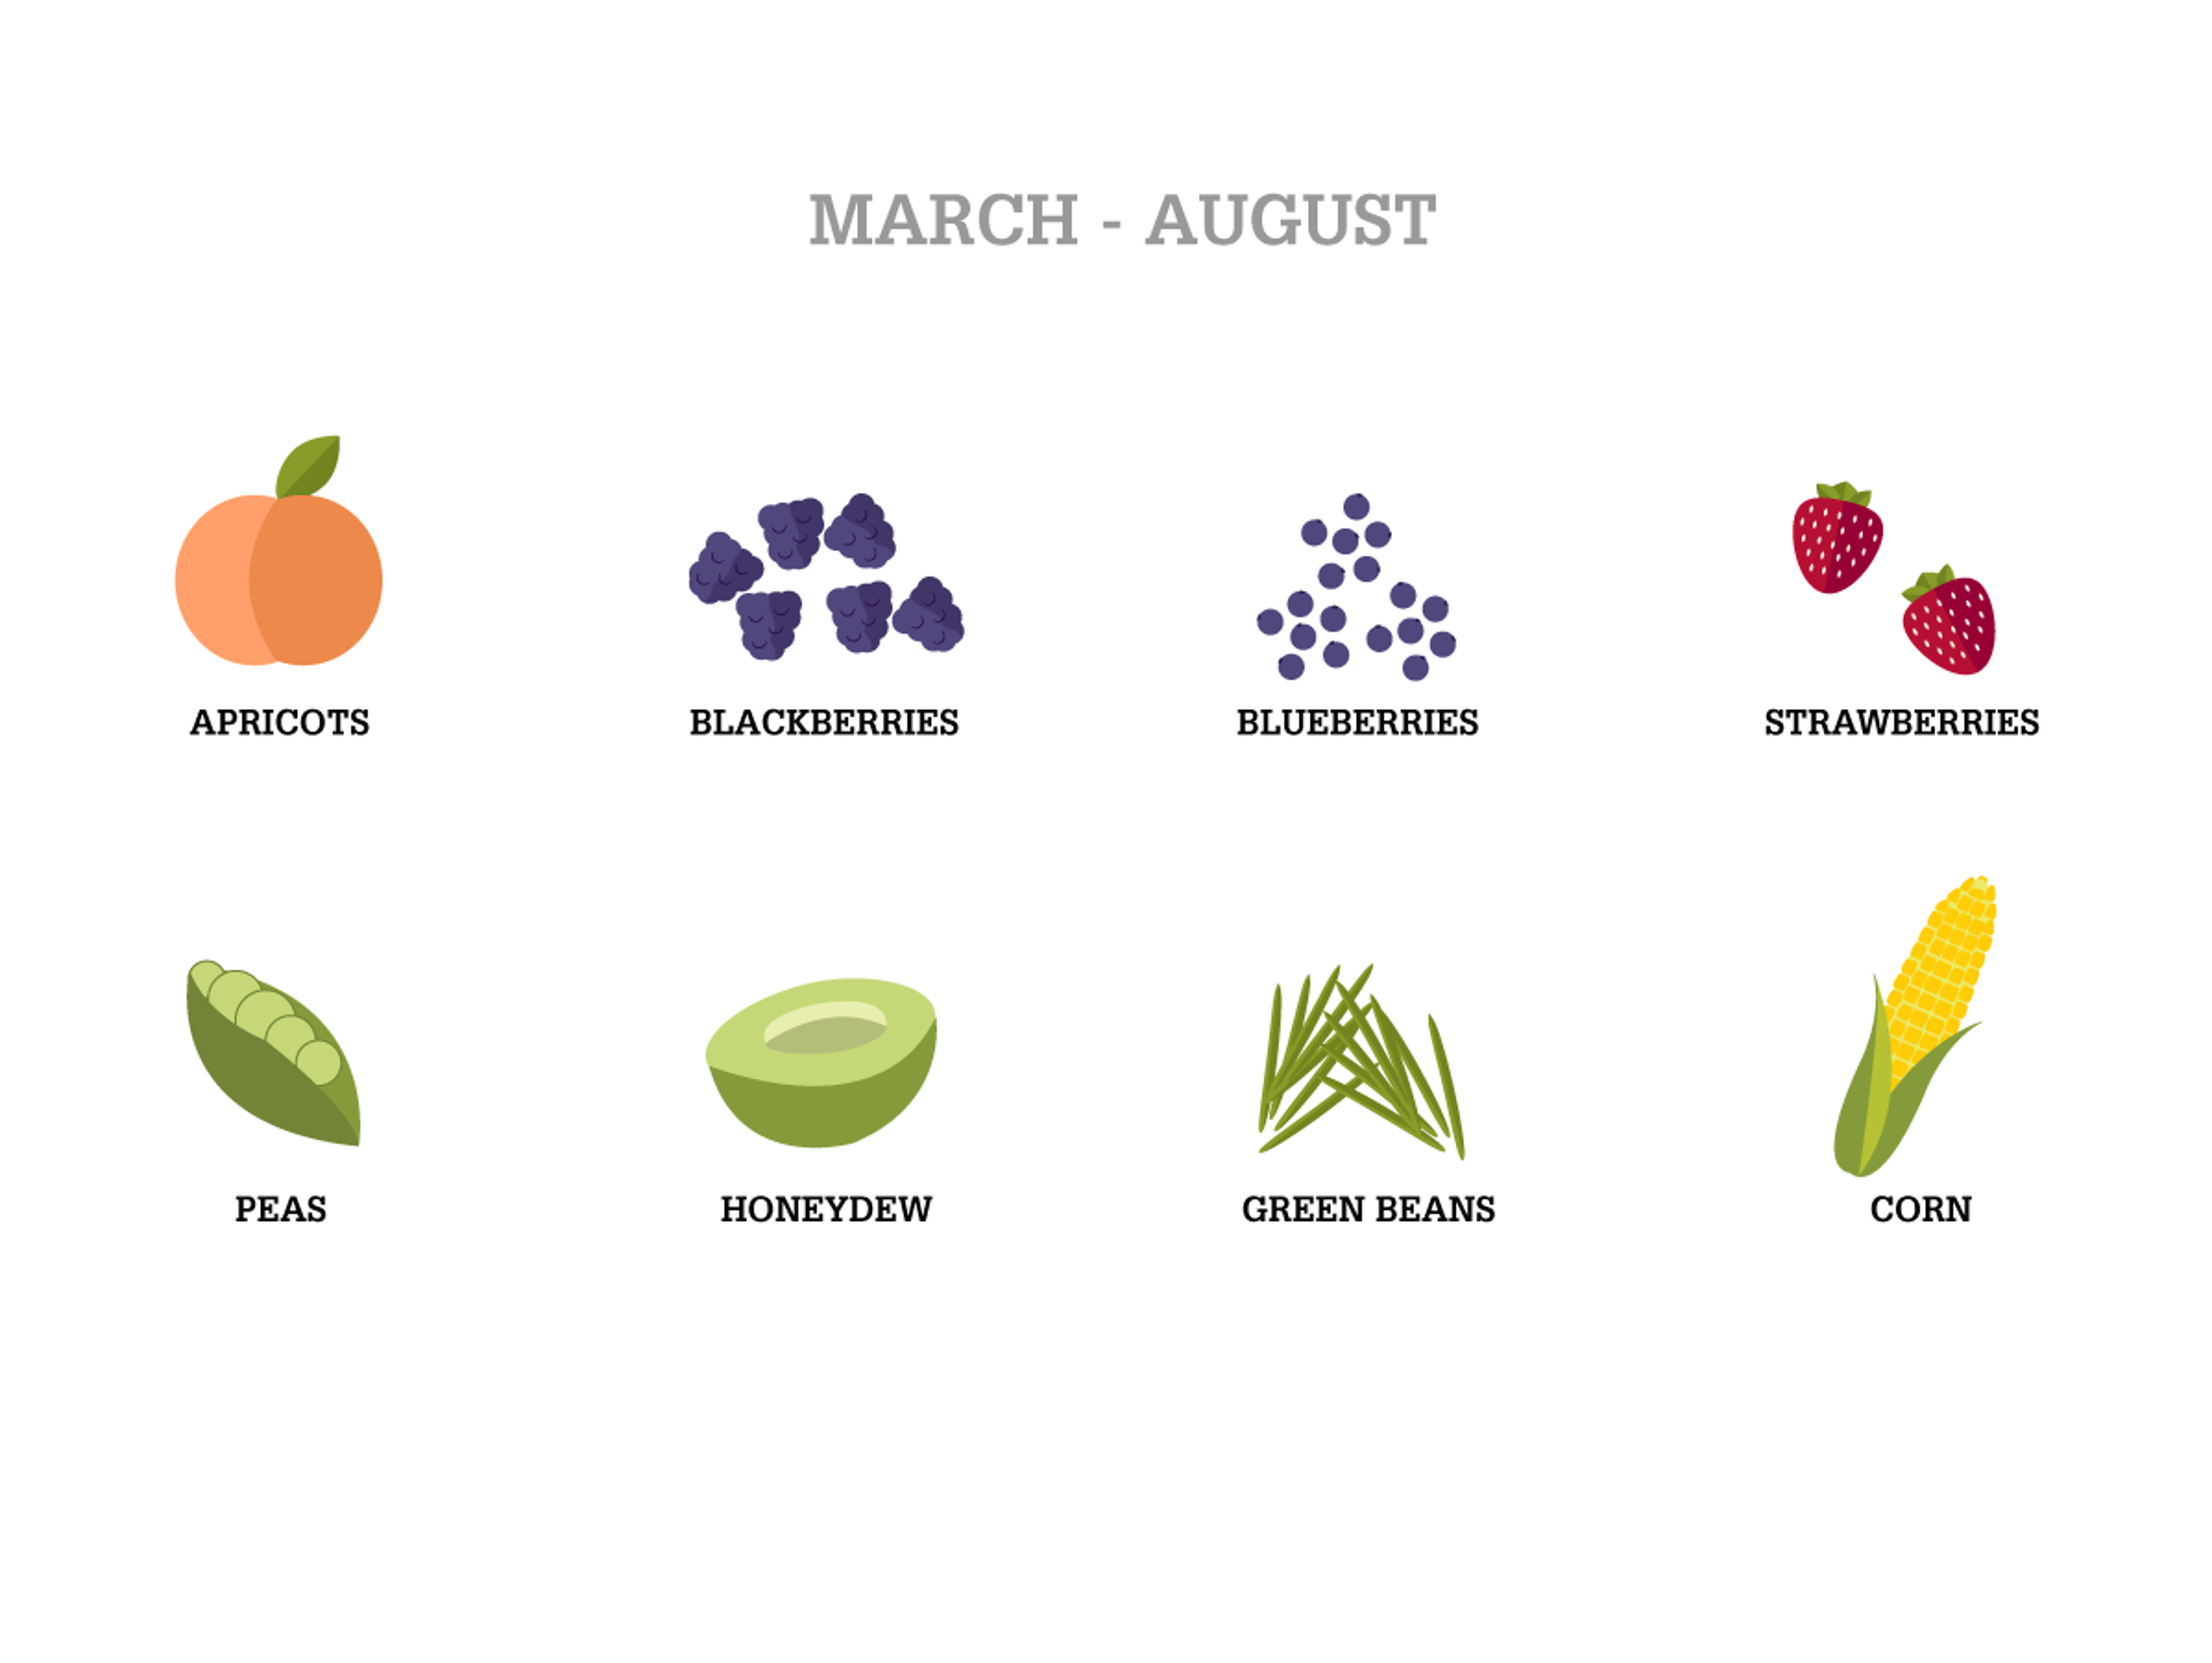 These fruits and vegetables may be found in both spring